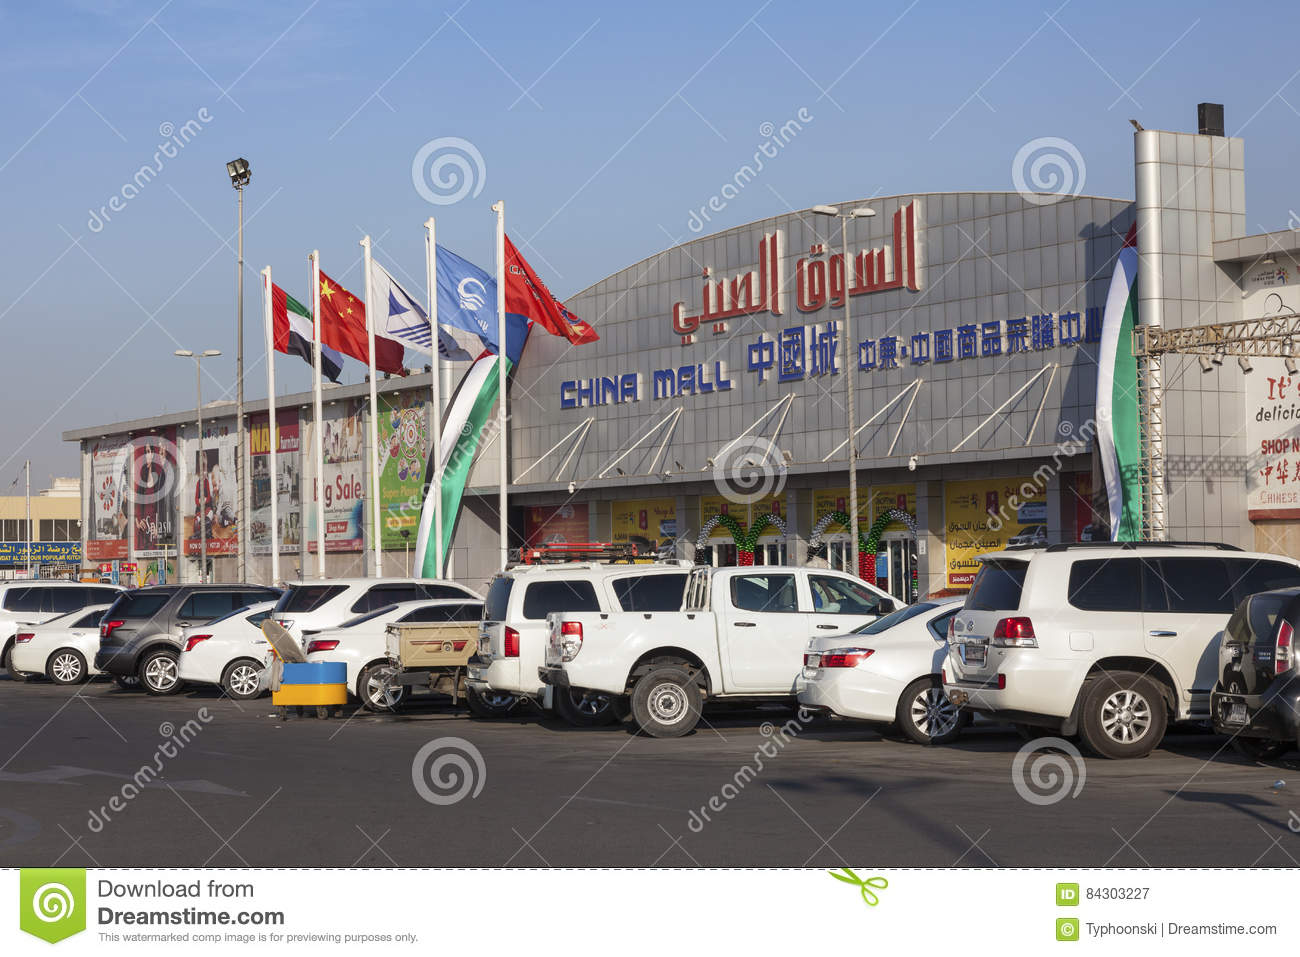 China Mall in Ajman, UAE editorial photography  Image of